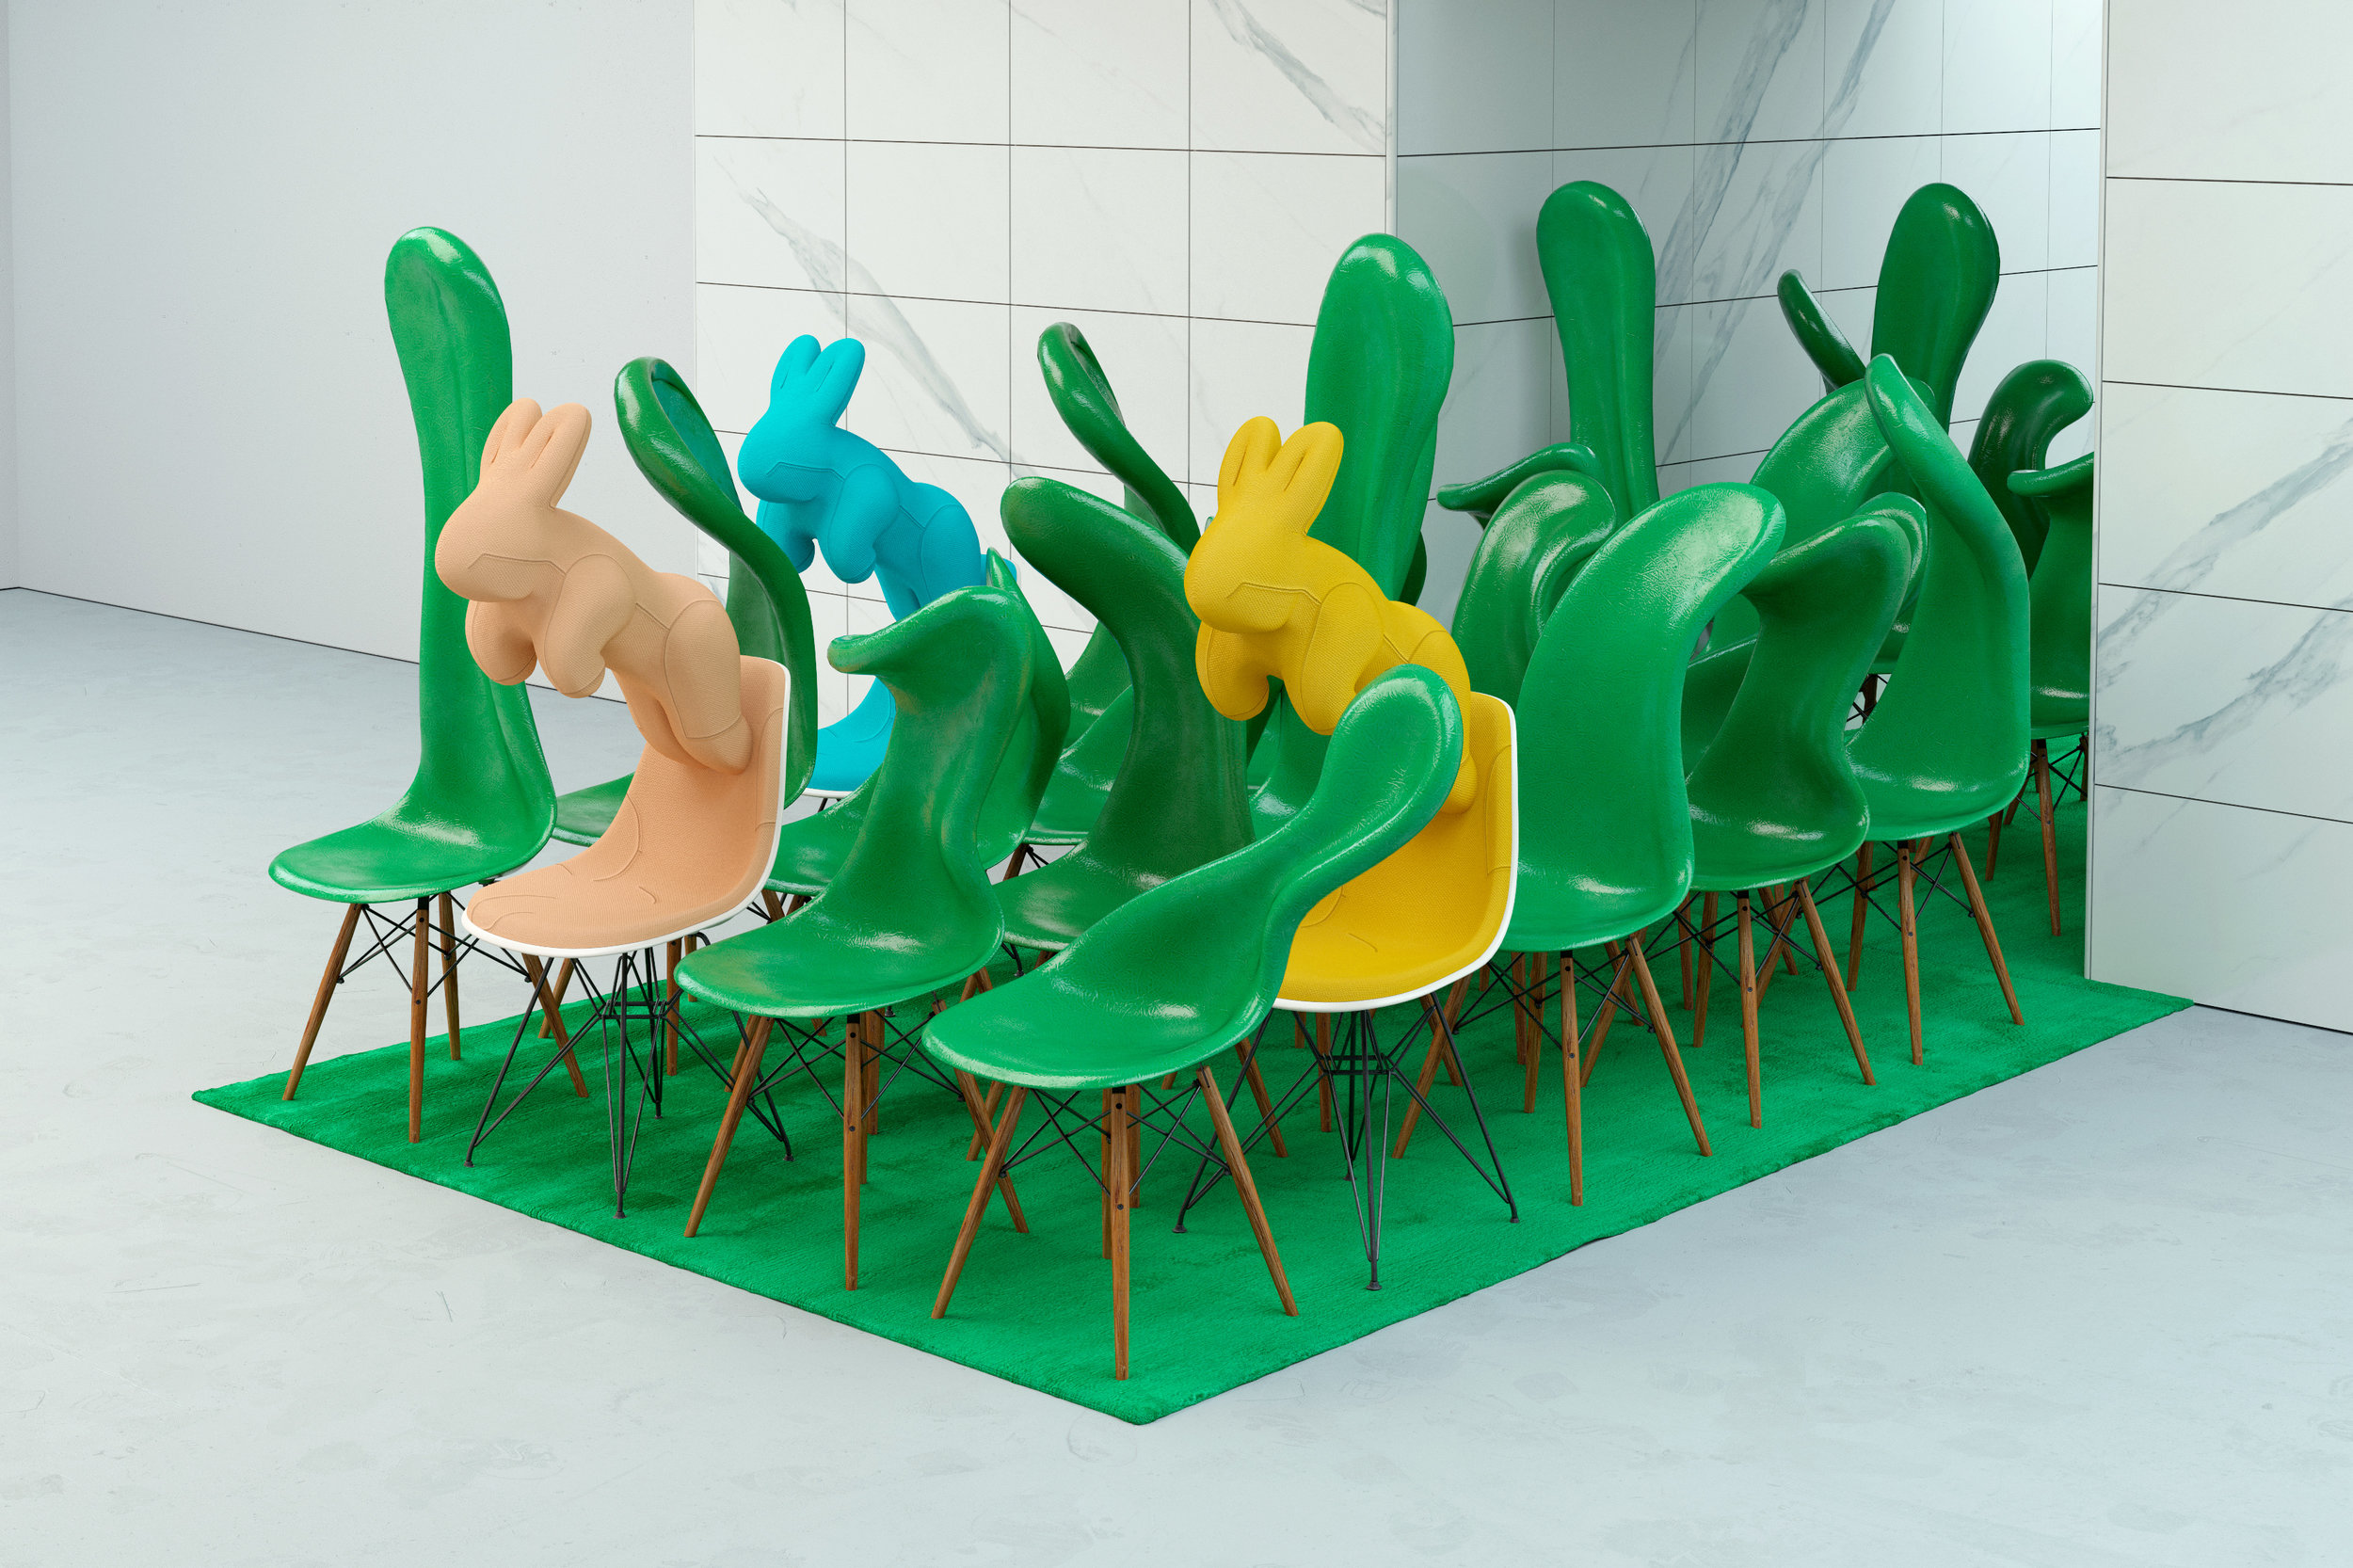 eames_rabbits_and_grass1.jpg